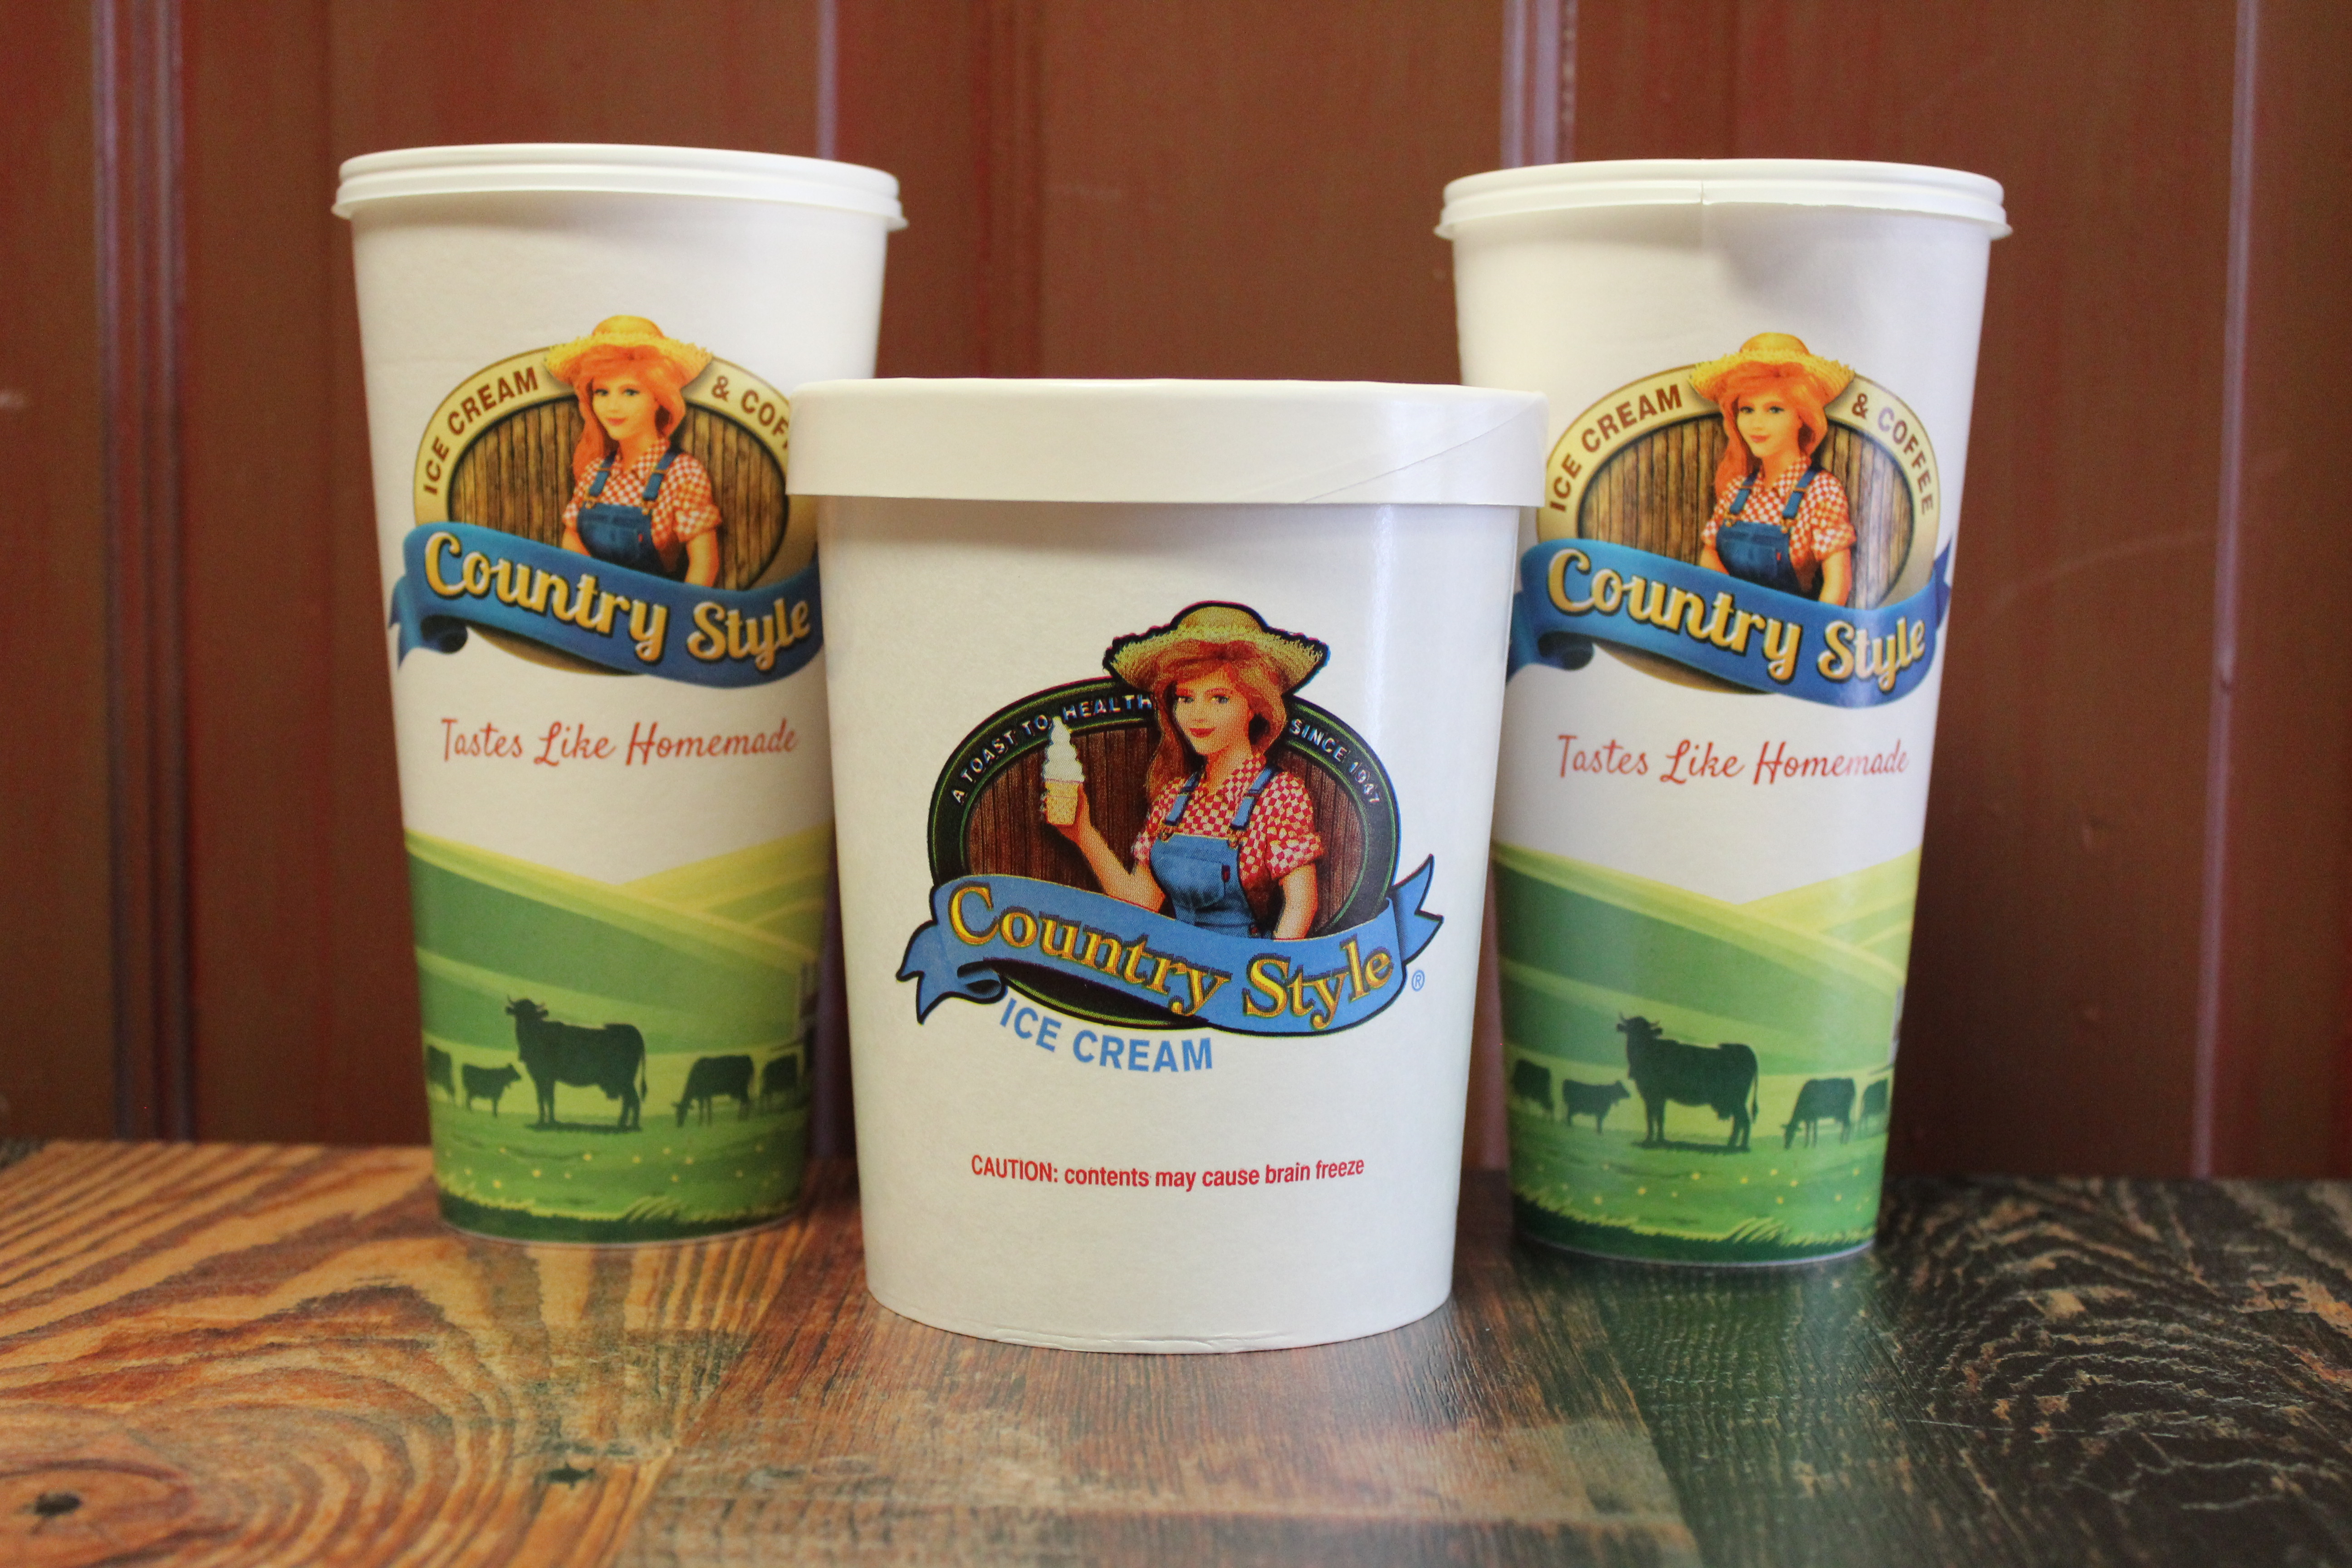 Where Brain Shakes May Be Key To >> 1 Quart And 2 Shakes Country Style Ice Cream